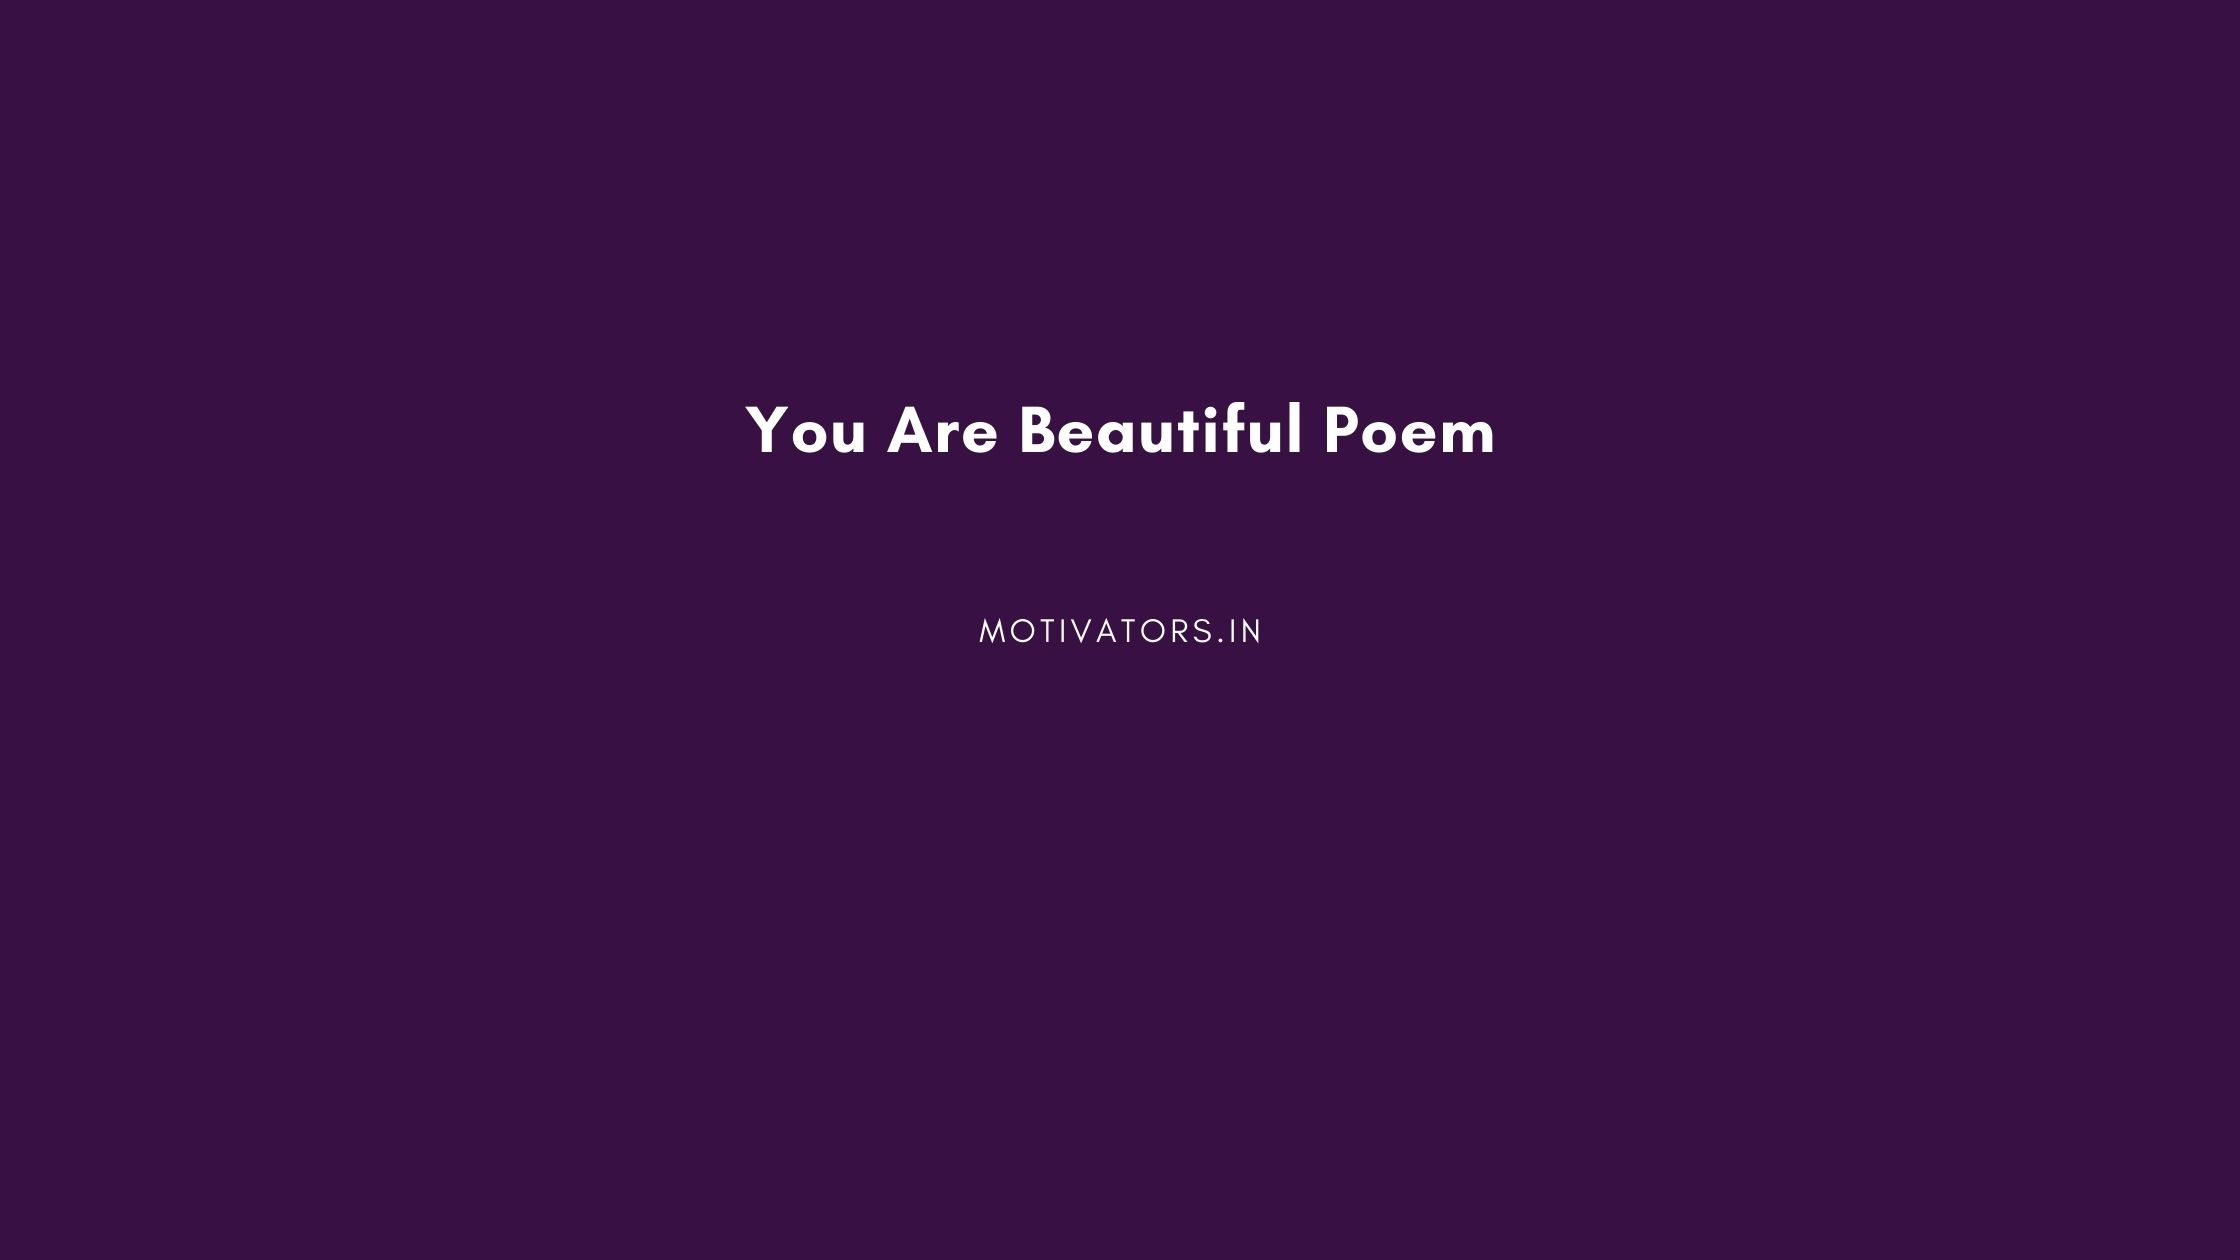 You Are Beautiful Poem